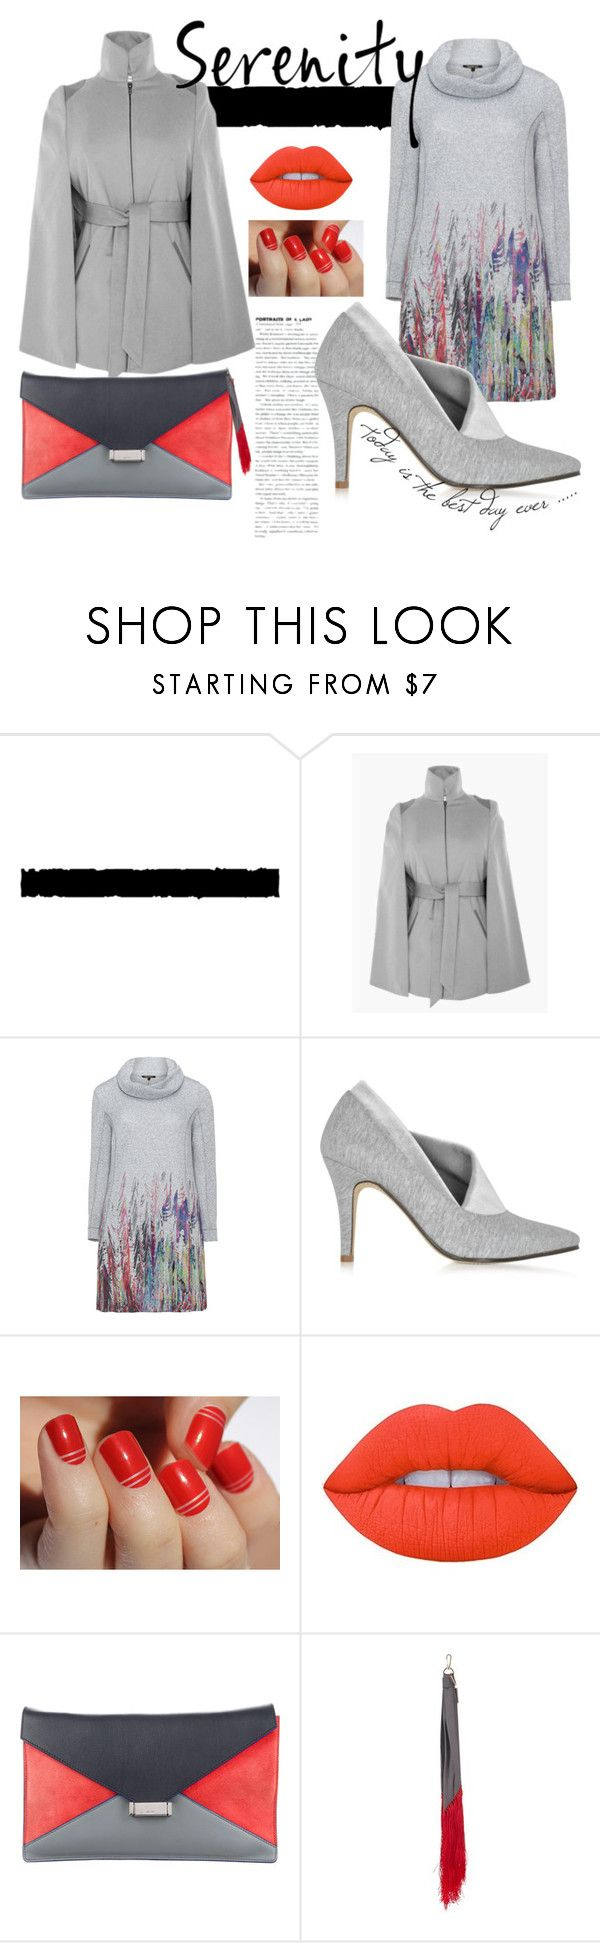 """Grey Girl"" by notyourgina ❤ liked on Polyvore featuring Tim Holtz, Twister, Zoe Lee, SoGloss, Lime Crime, CÉLINE and Hillier Bartley"